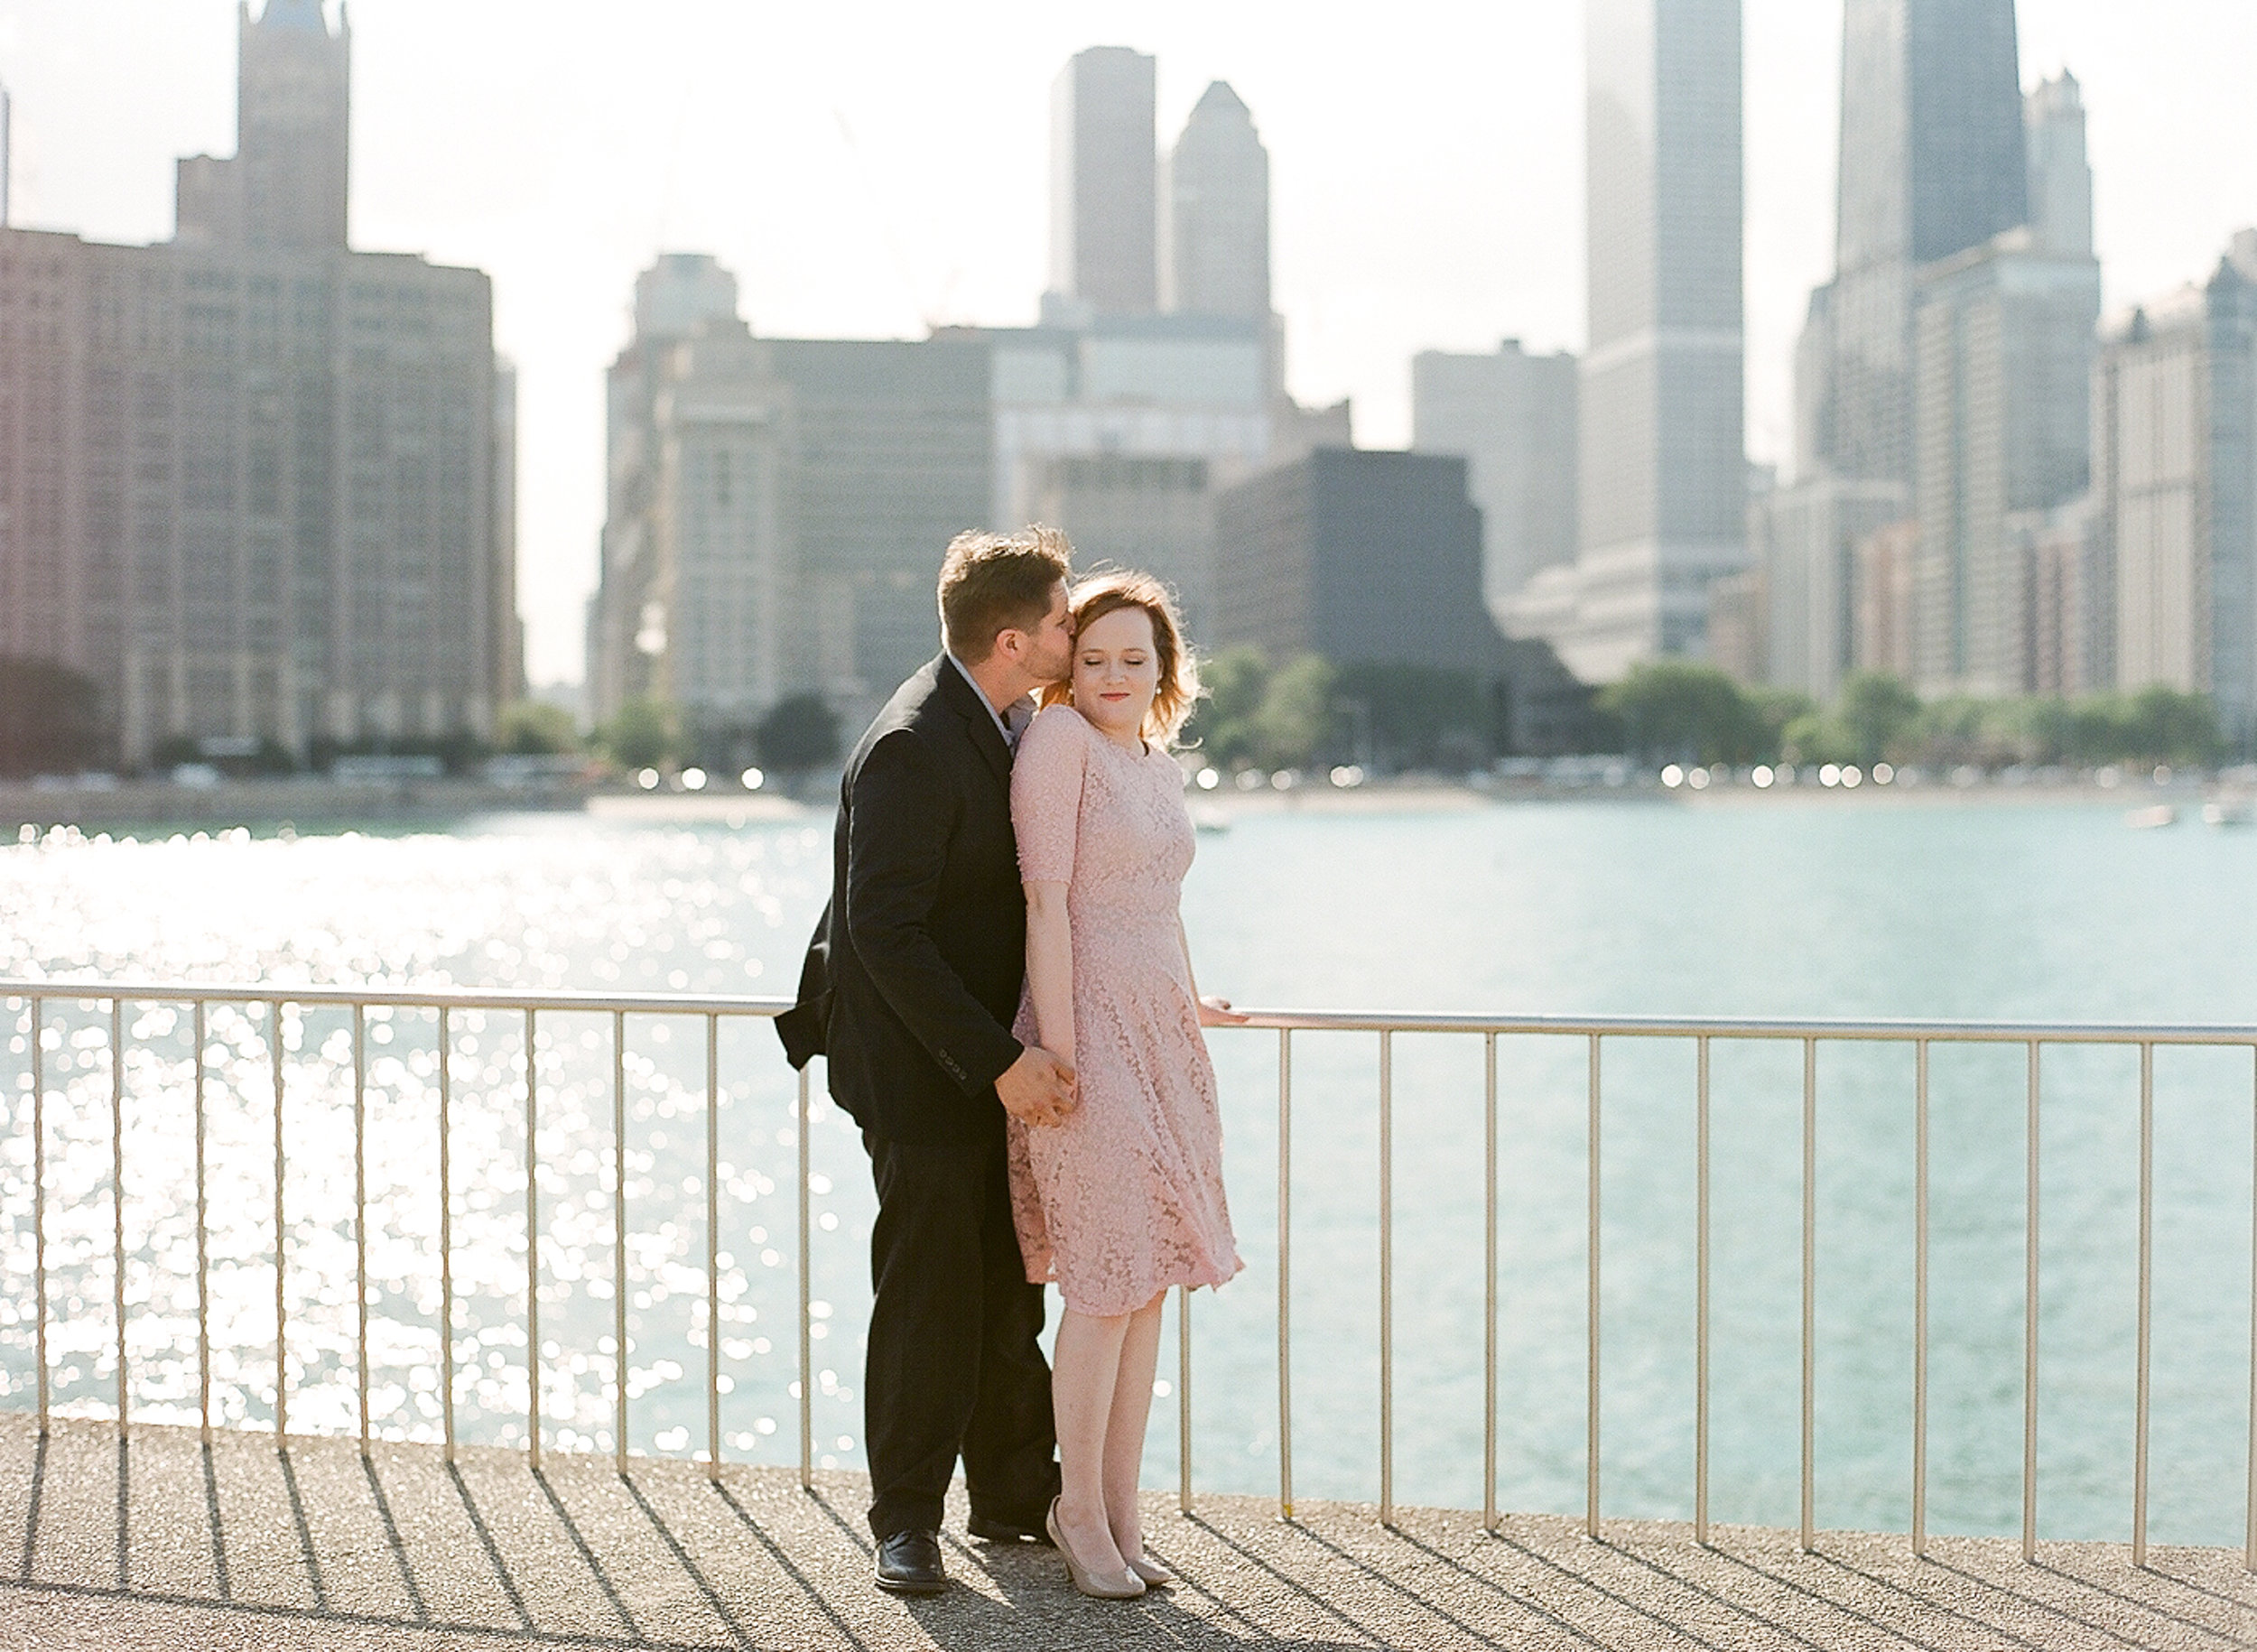 Bonphotage Chicago Fine Art Wedding Photography - Milton Lee Olive Park